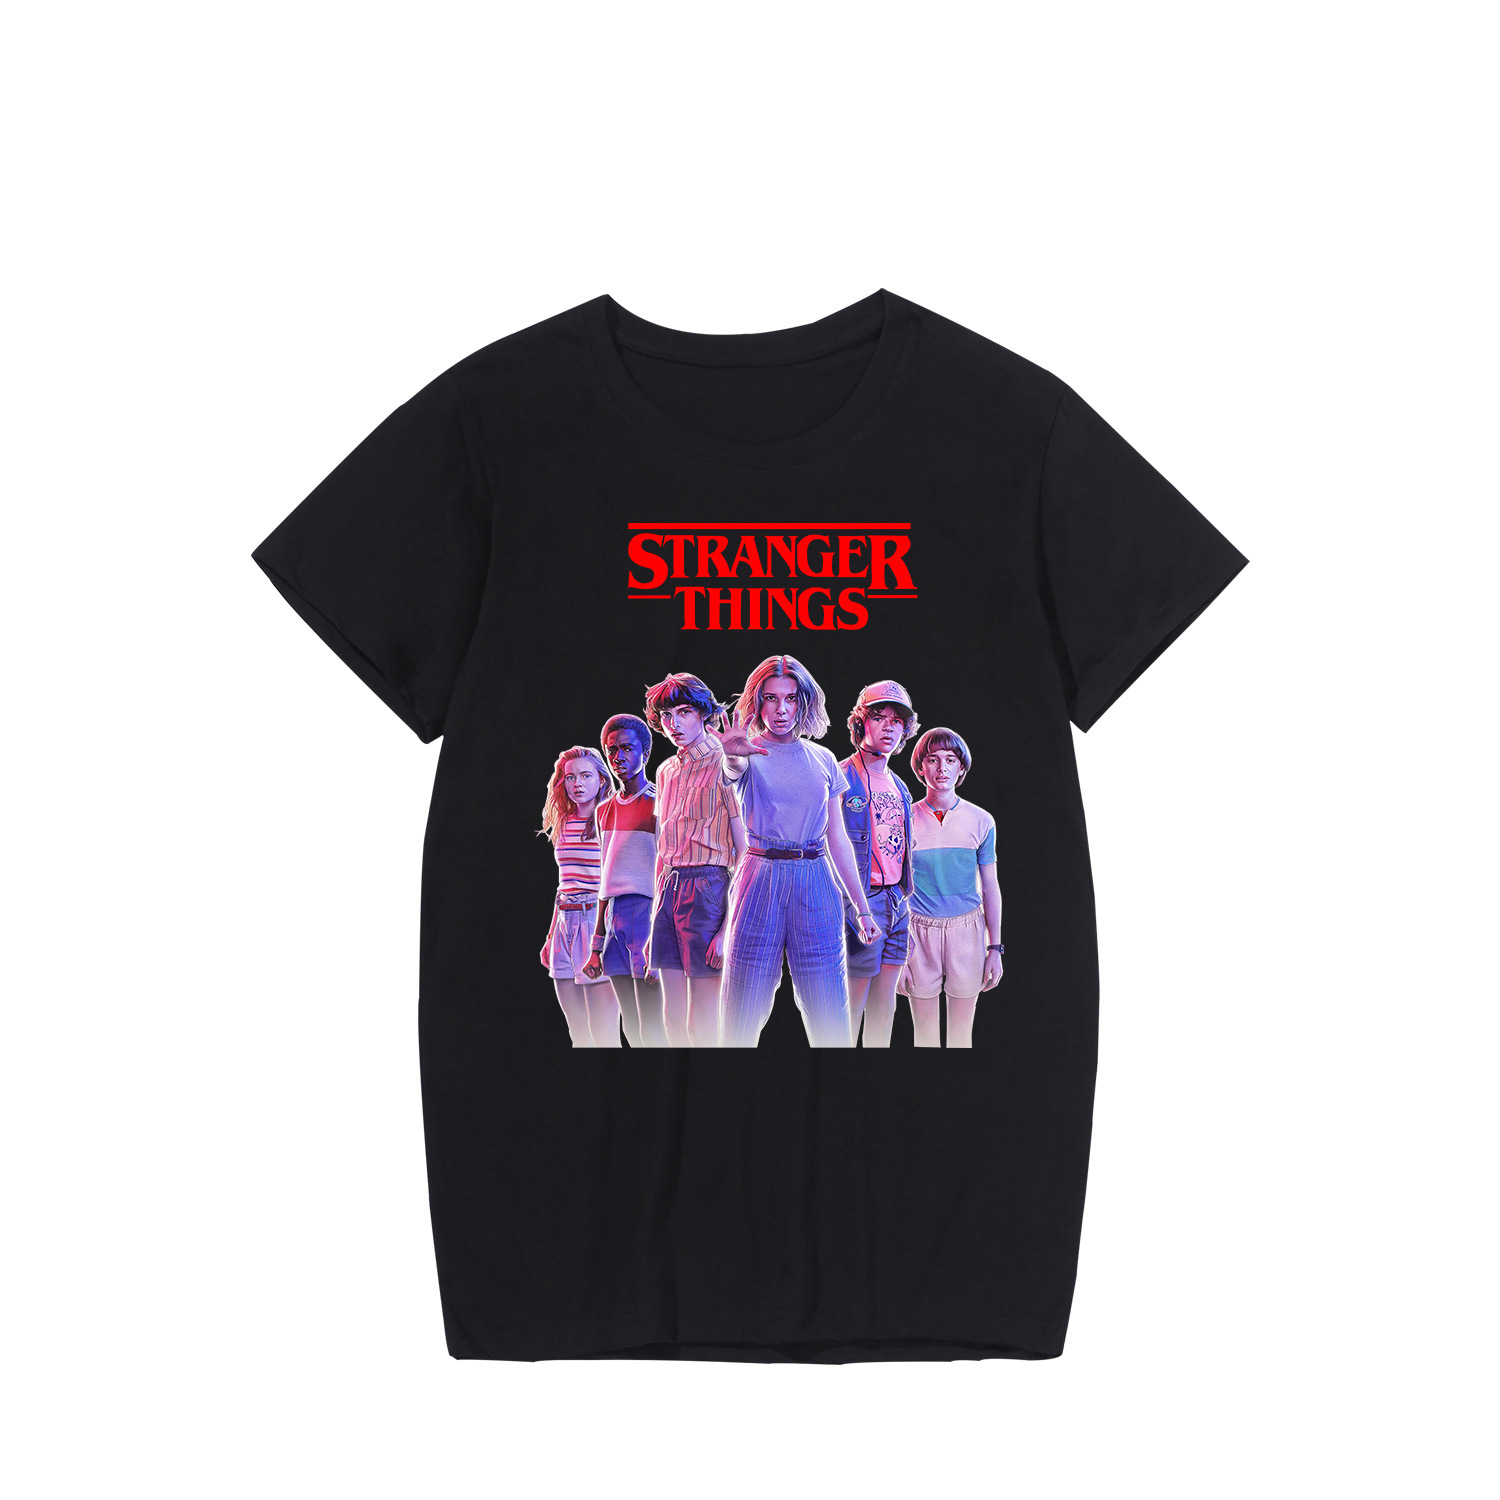 2019 Stranger Things T Shirt Women Tshirt Tee Shirt Femme Clothes Merchandise New Style 4xl Clothes Short Sleeve Women Tee in T Shirts from Women 39 s Clothing